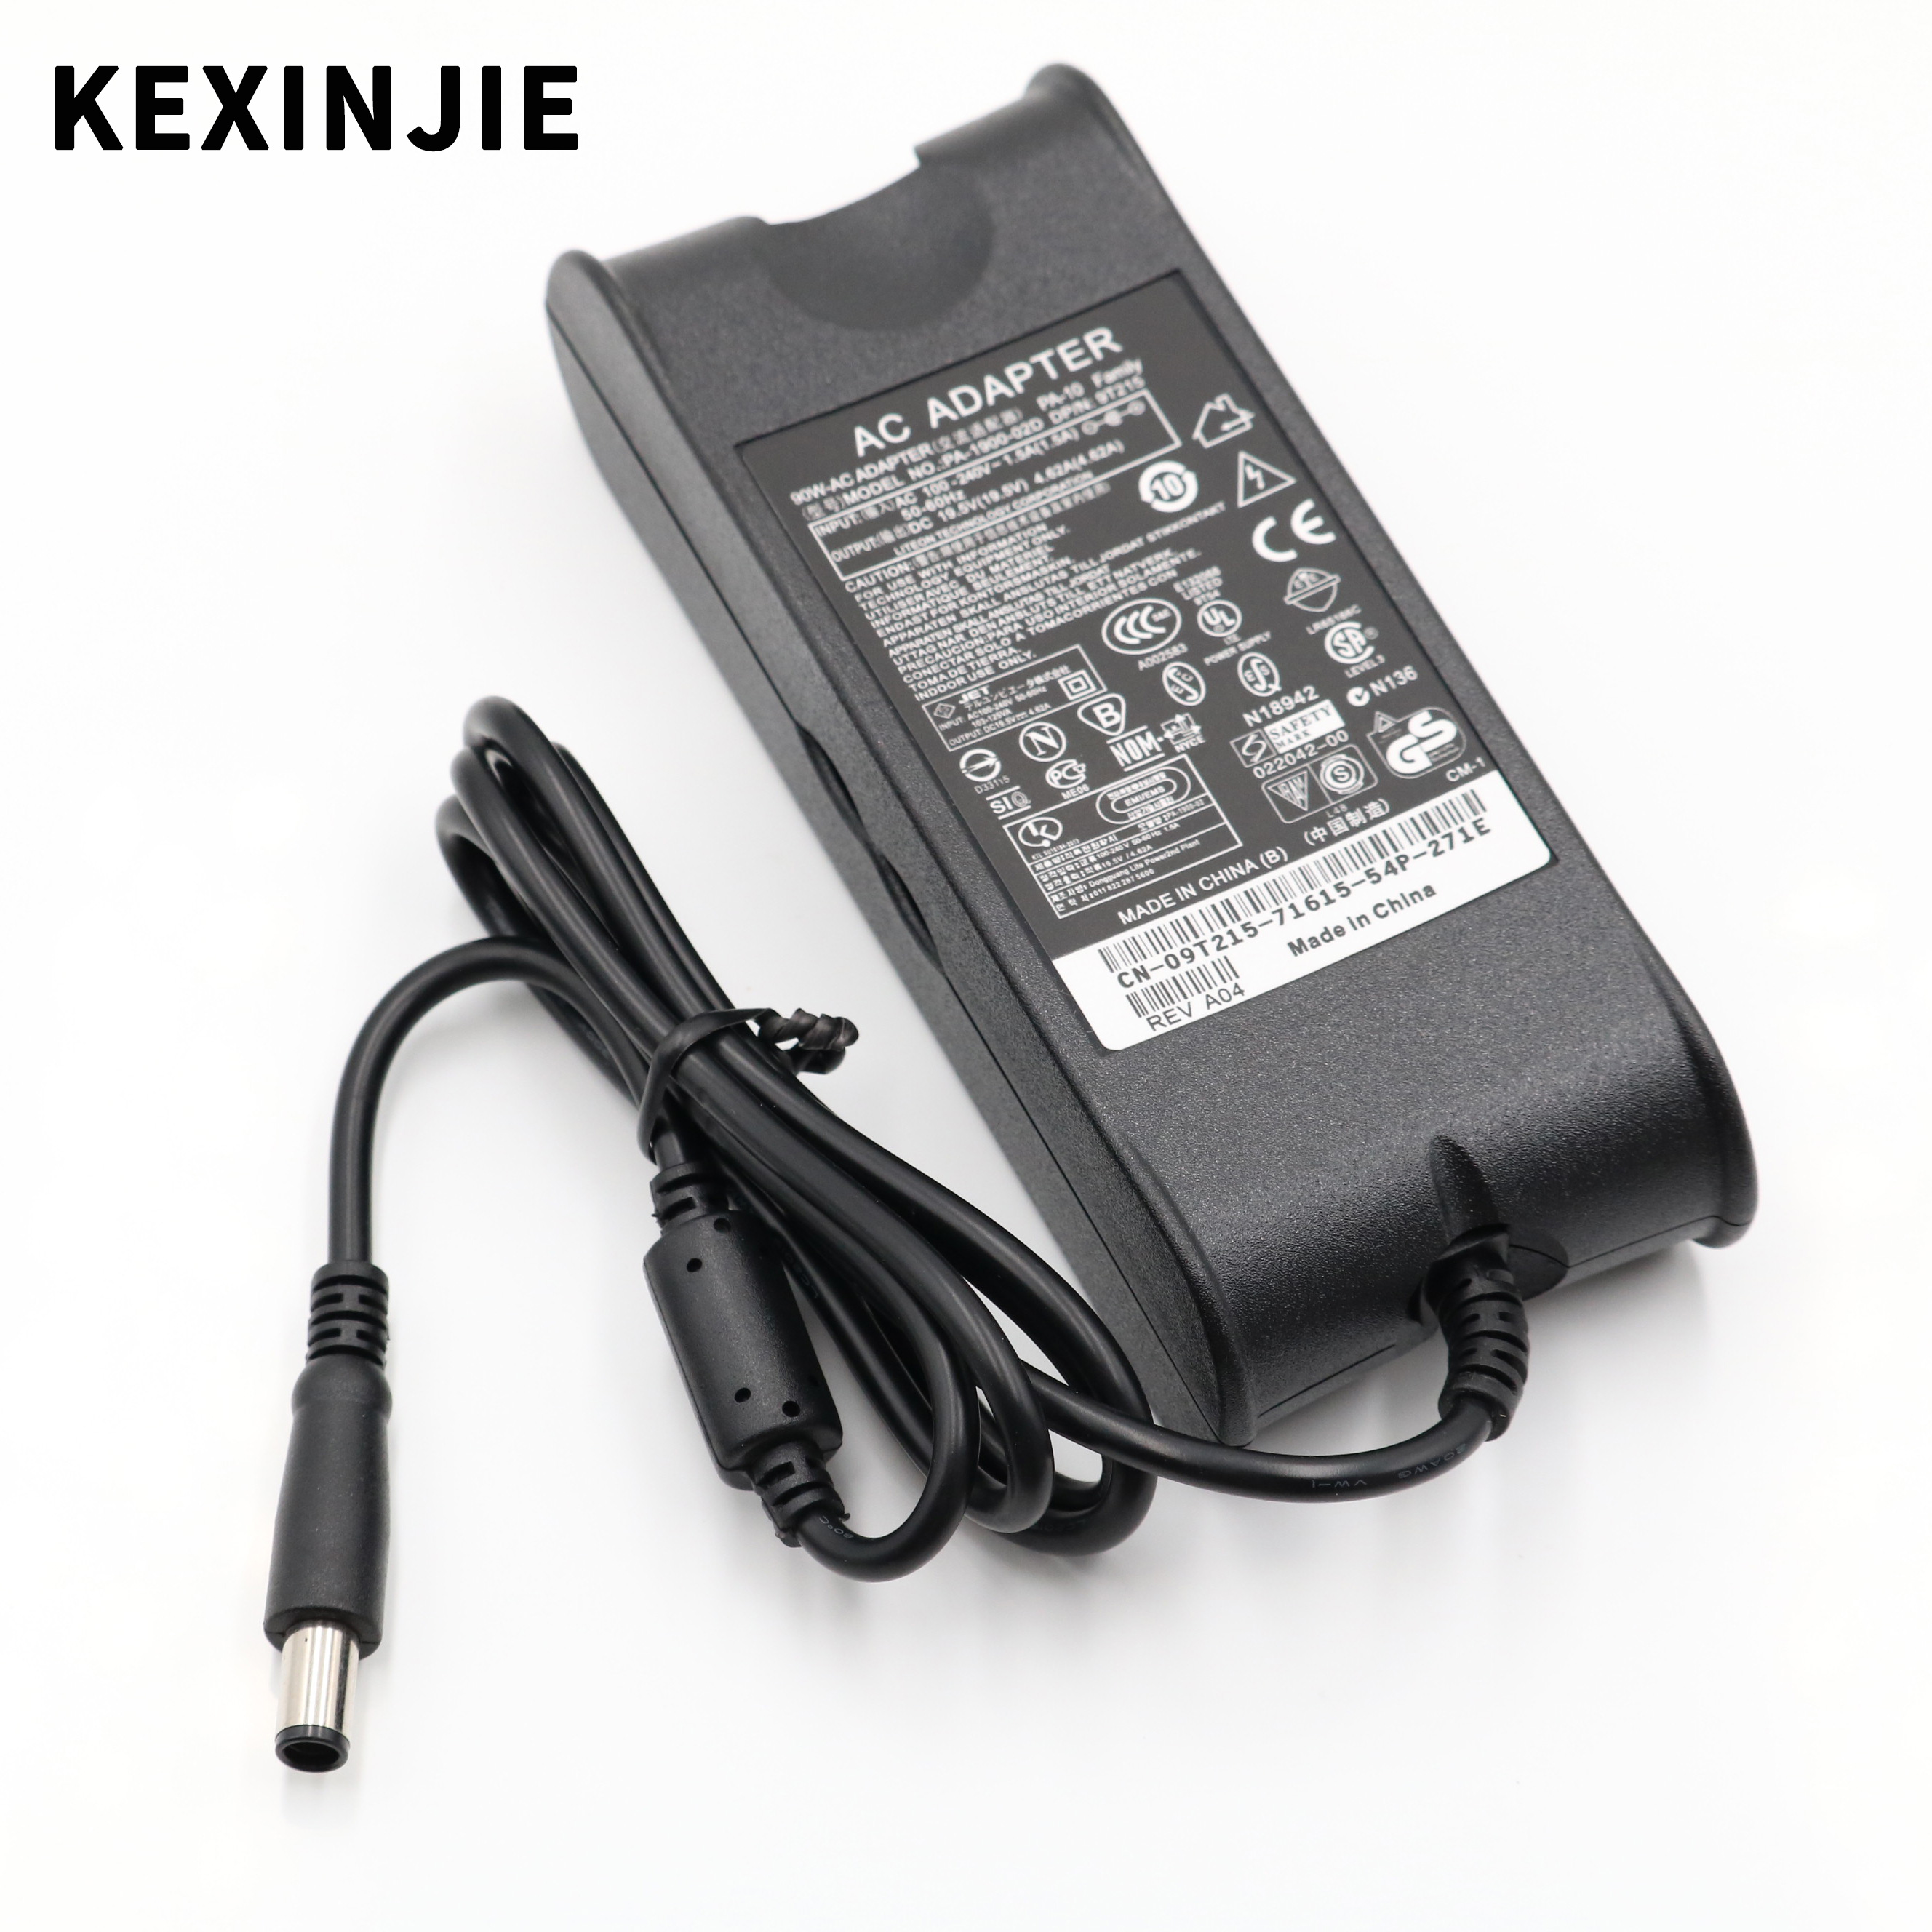 19.5V 4.62A DC 7.4*5mm AC Adapter For Dell Inspiron PA-10 1545 N4010 N4030 N4050 1400 D610 D620 D630 1420 D800 E6400 19.5V4.62A